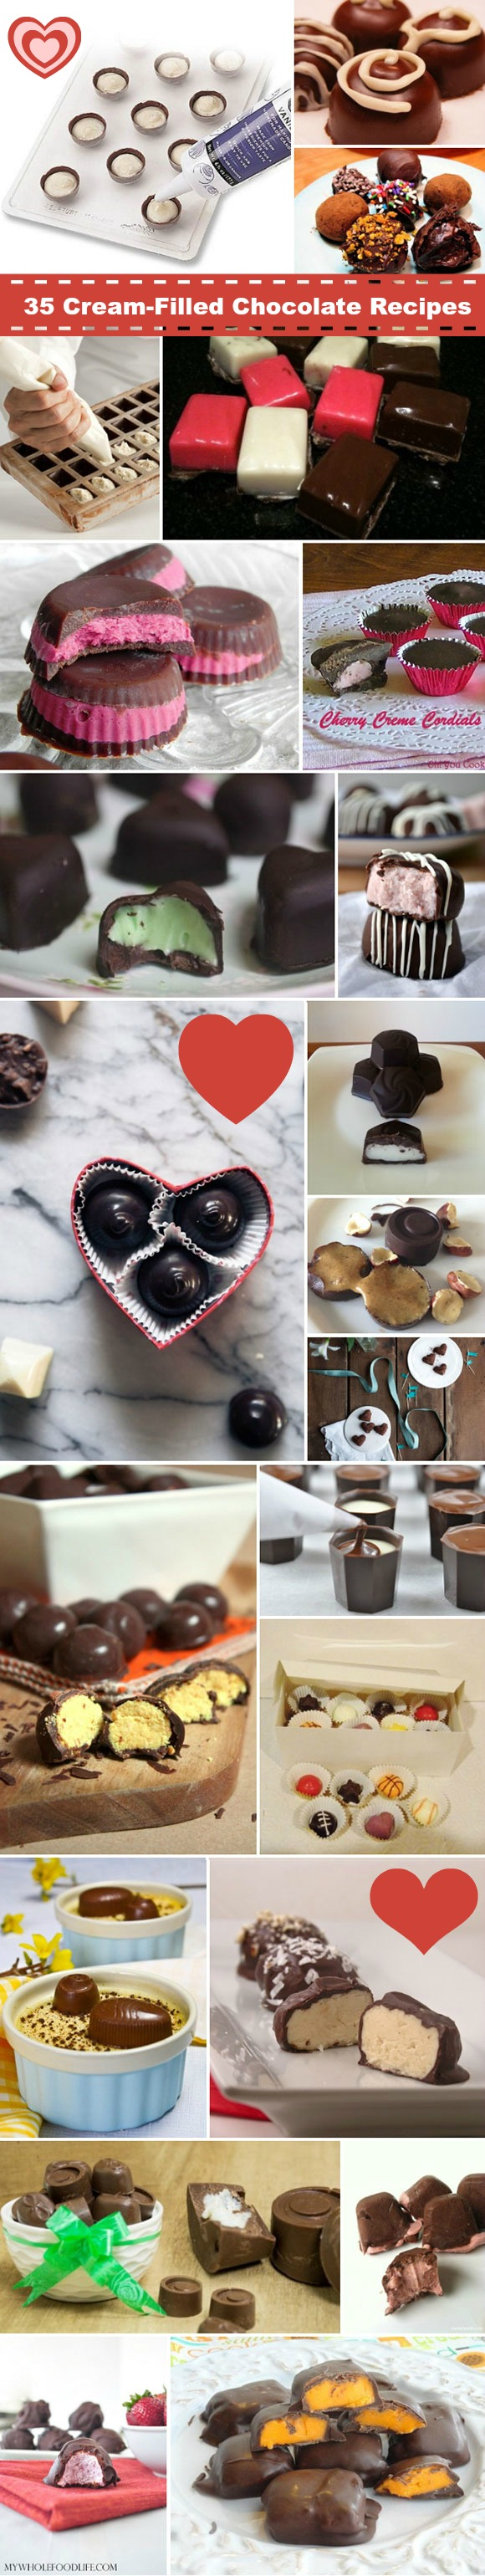 February 14th is National Cream-Filled Chocolates Day – Best 35 Recipes